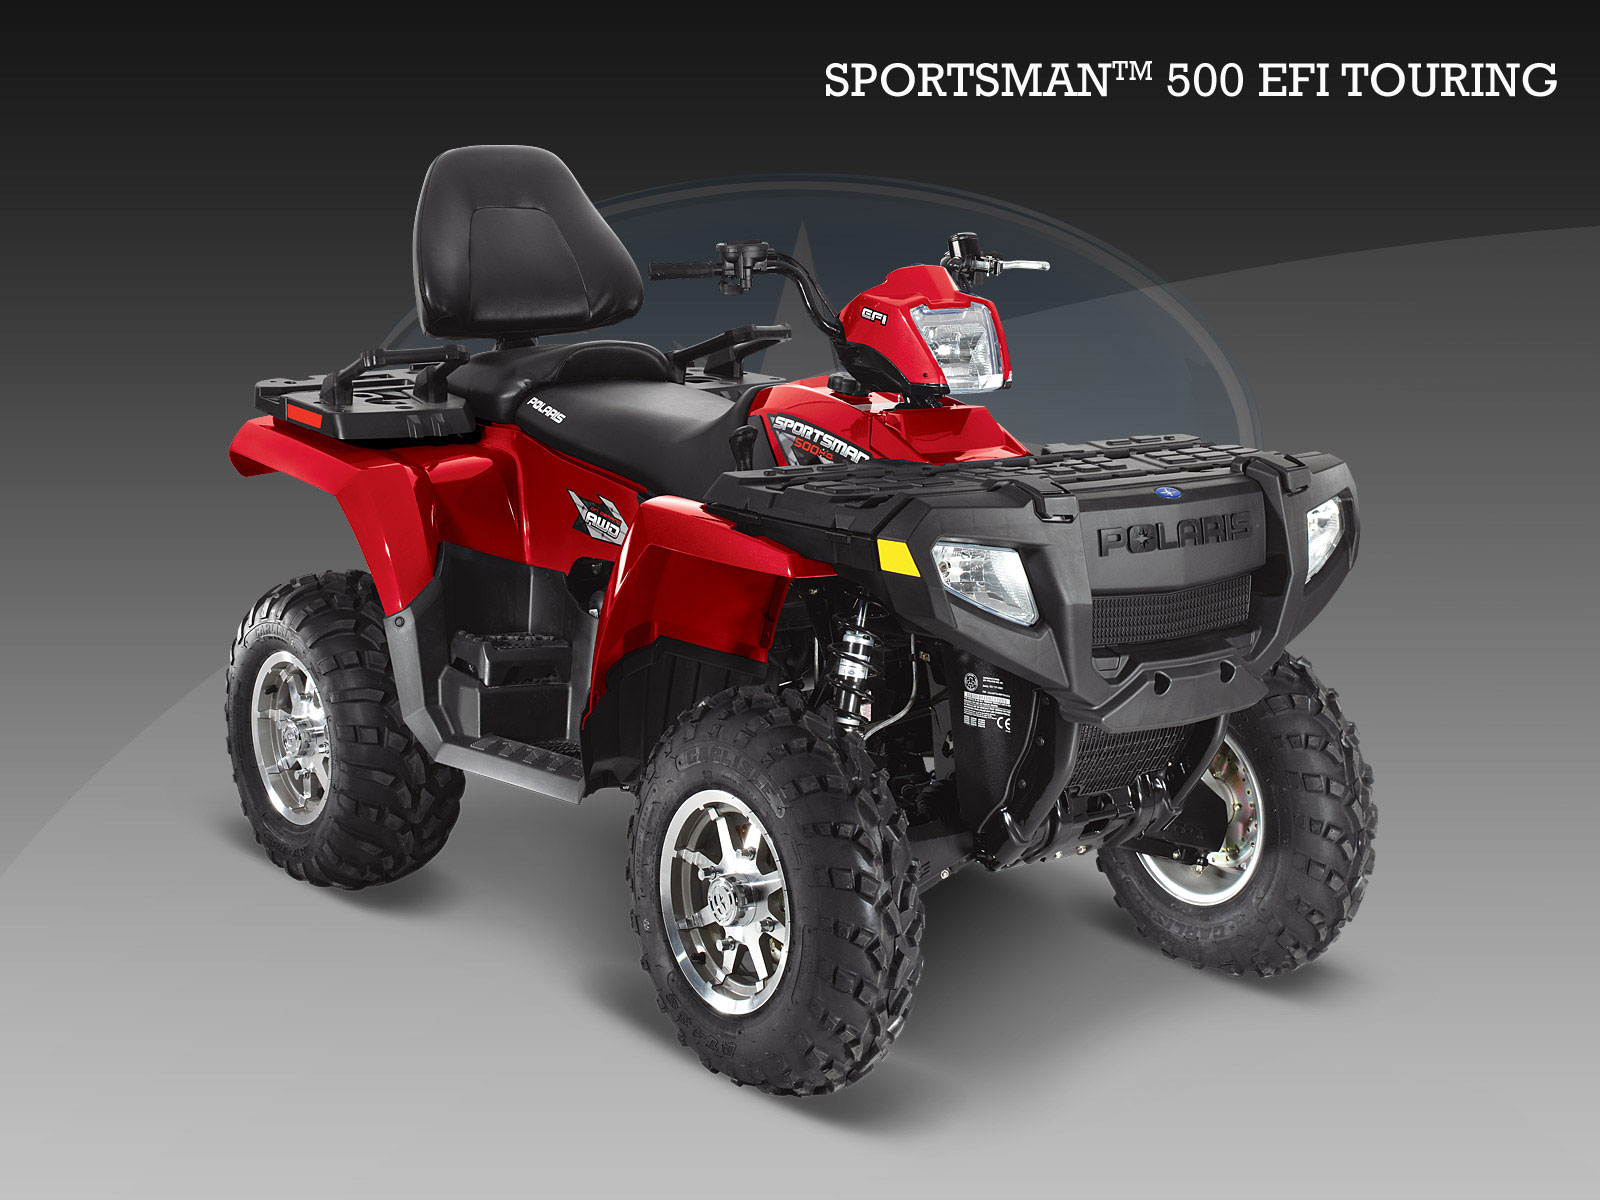 polaris sportsman 500 efi touring specs 2008 2009 autoevolution. Black Bedroom Furniture Sets. Home Design Ideas